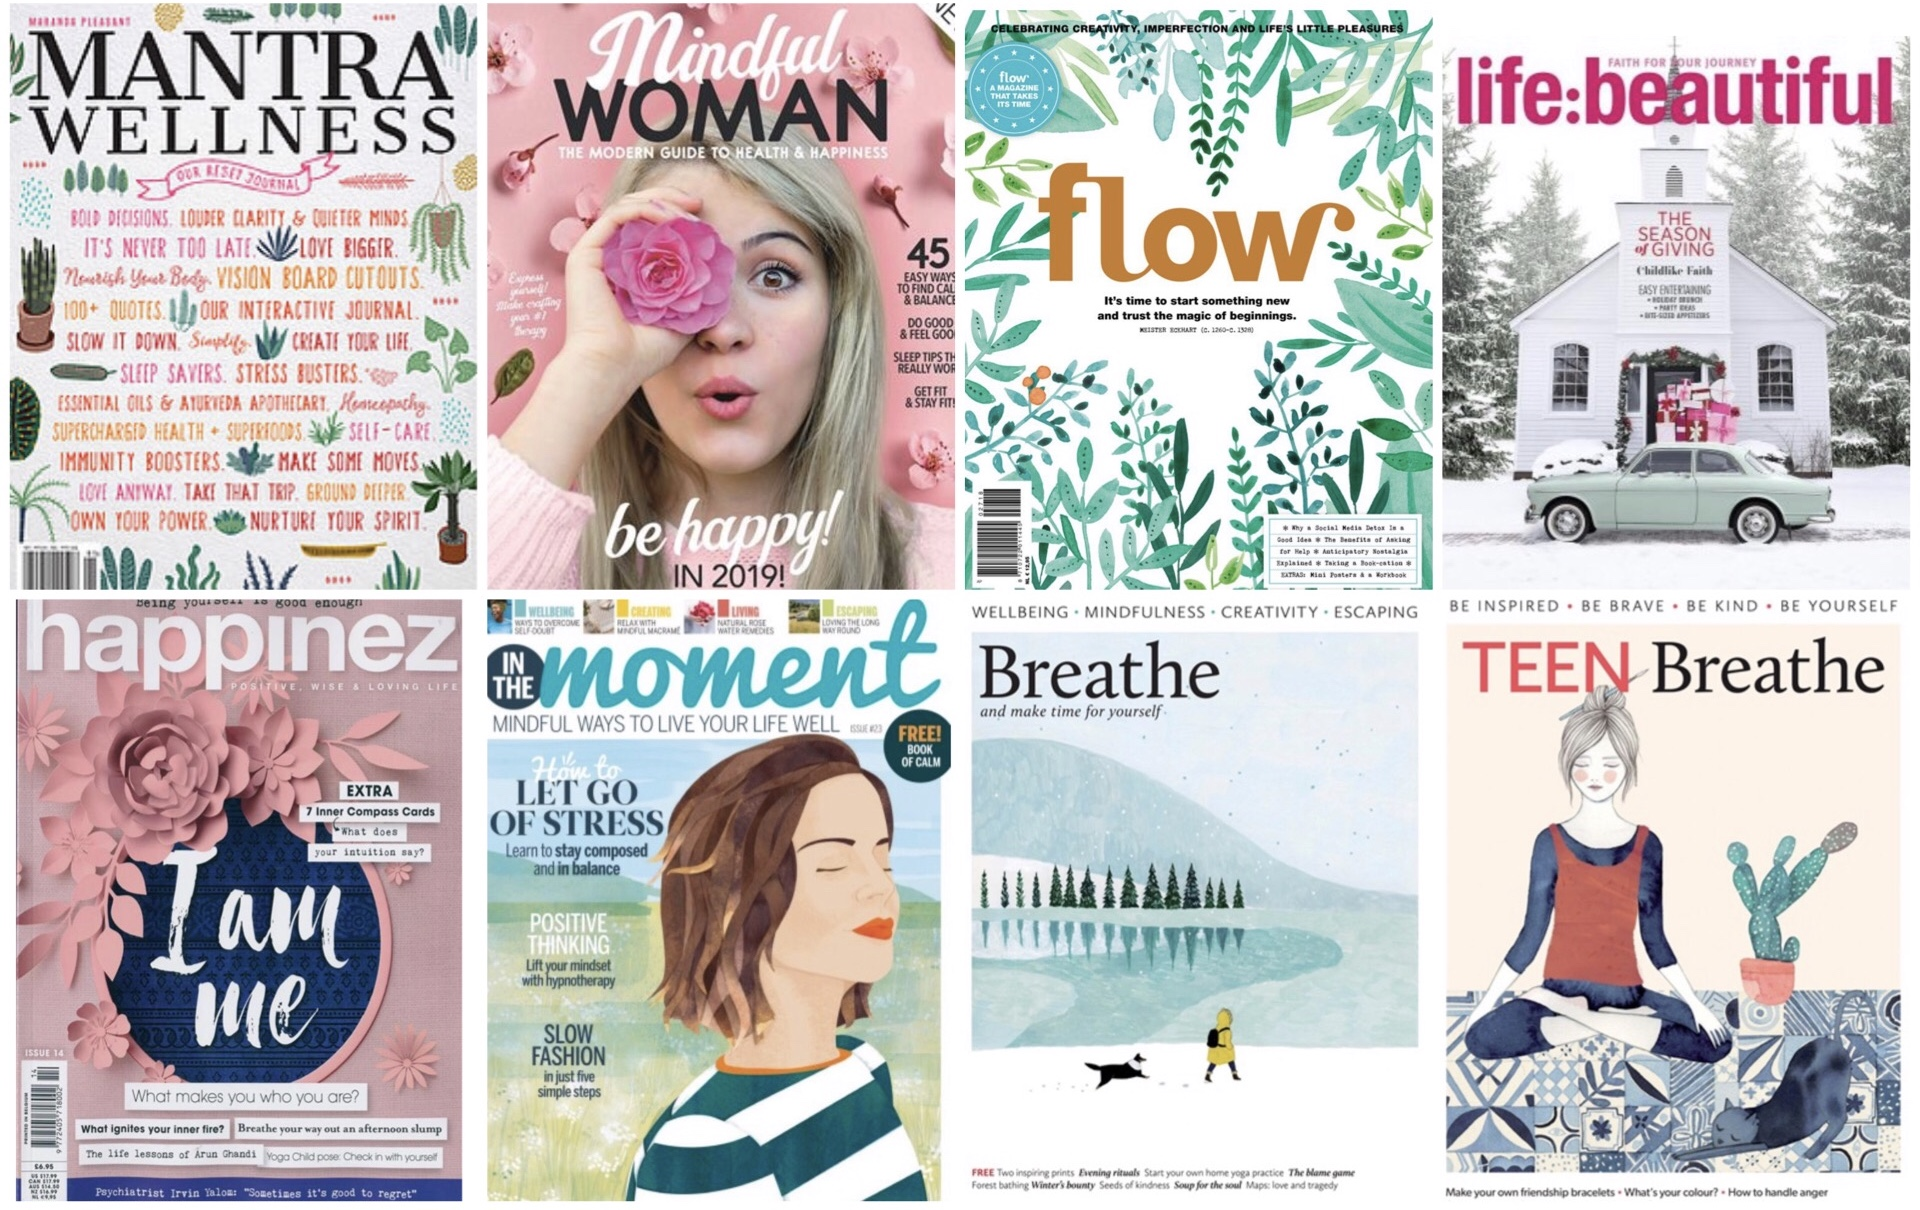 1.  Mantra Magazine . 2  mindful woman . 3  Flow Magazine . 4.  LIFE:BEAUTIFUL . 5.  happinez . 6.  In The Moment . 7. Breathe Magazine . 8.  Teen Breathe .